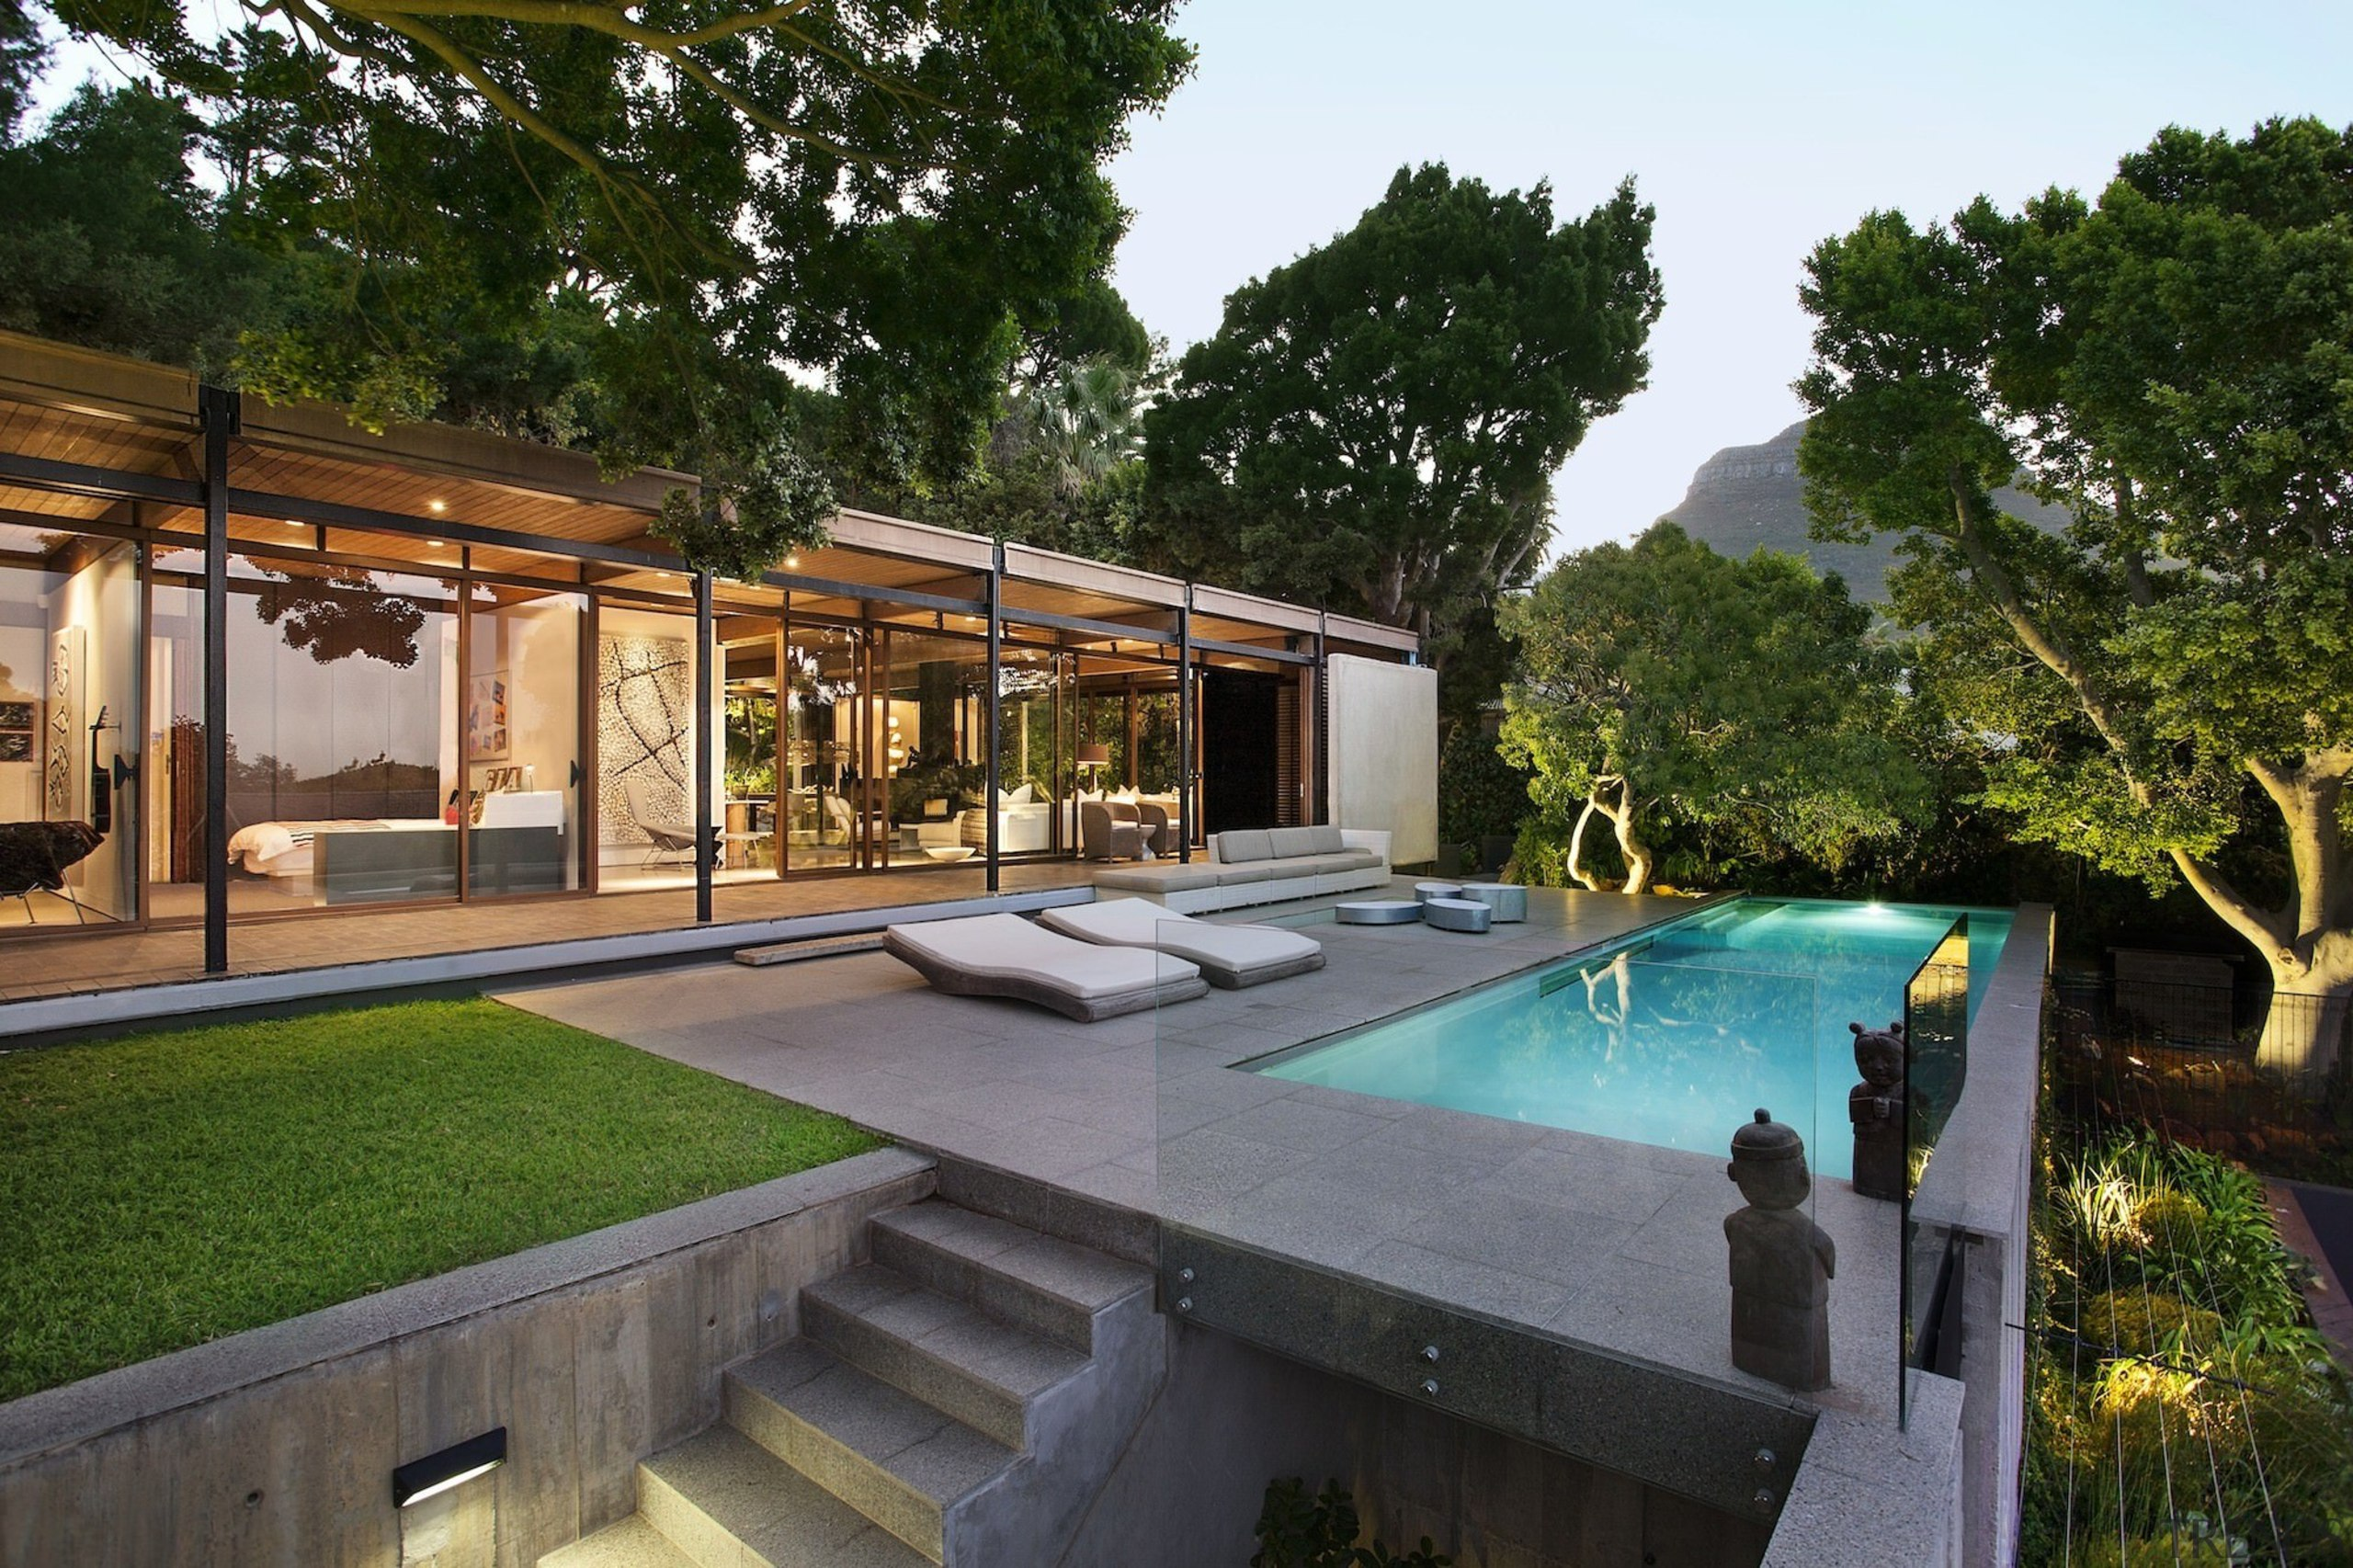 Dive into the elegant pool, before drying off architecture, backyard, estate, home, house, leisure, outdoor structure, property, real estate, resort, swimming pool, villa, brown